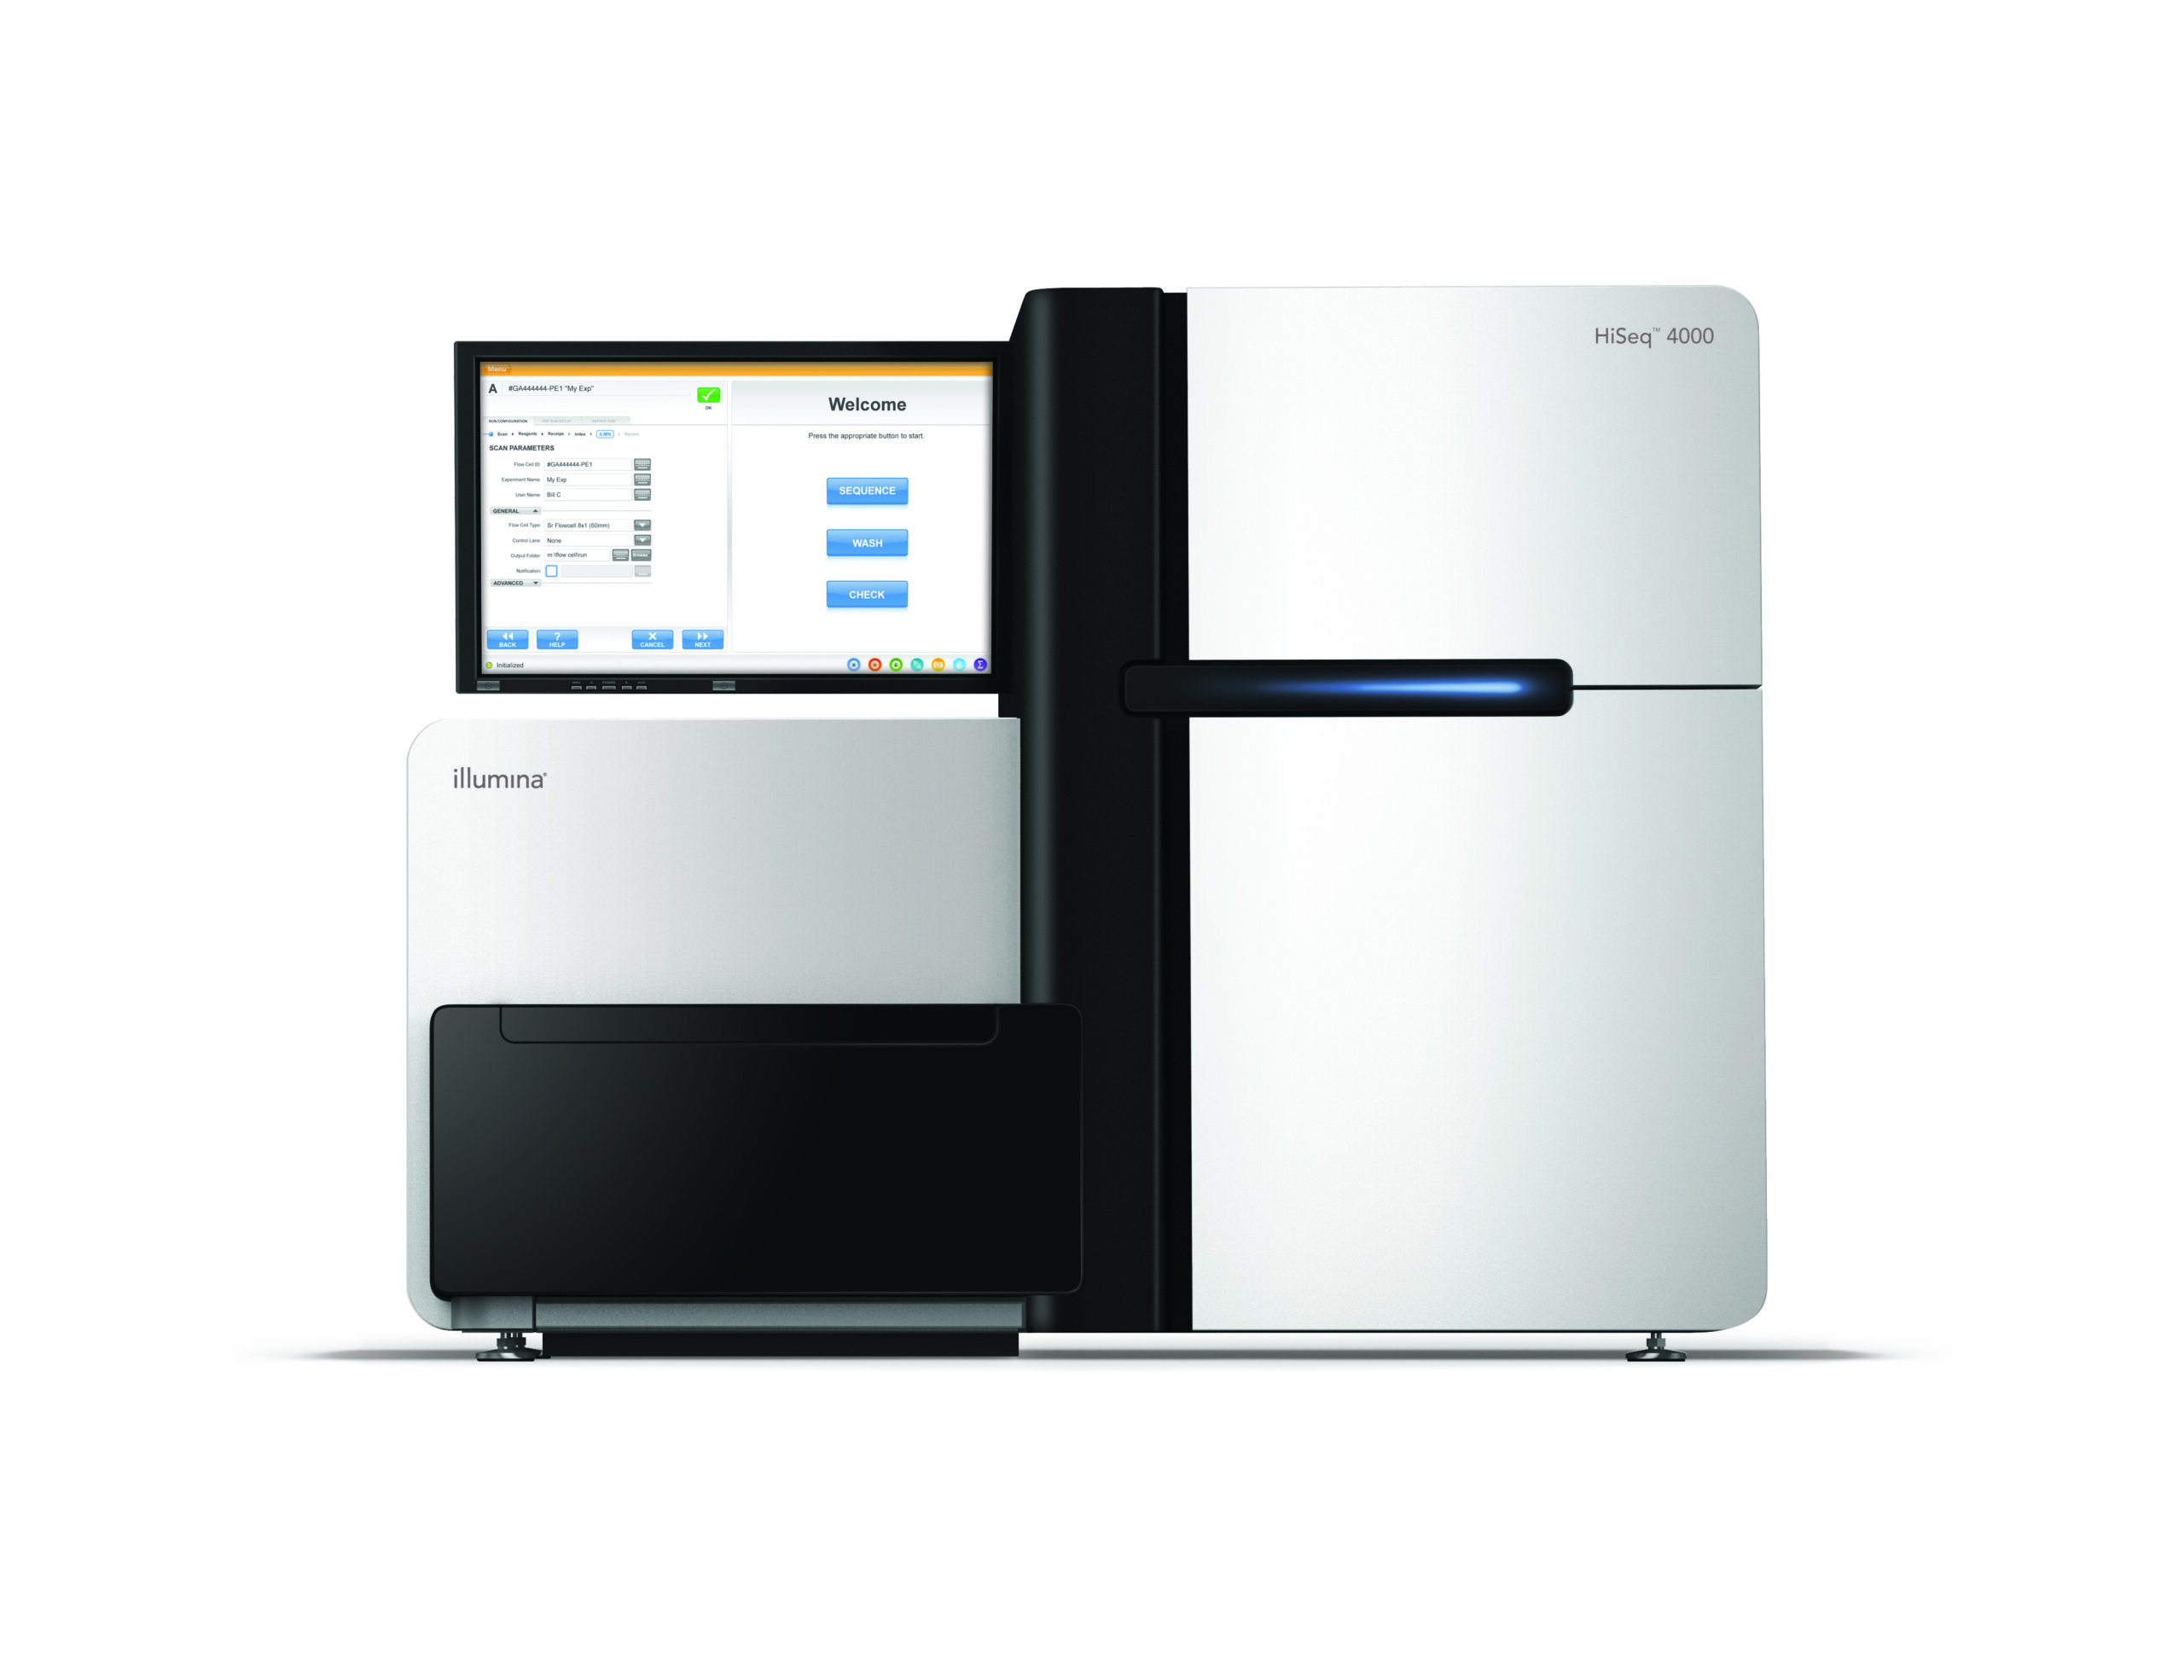 hiseq4000 Illumina HiSeq 4000 for all sequencing projects that require large data sets.